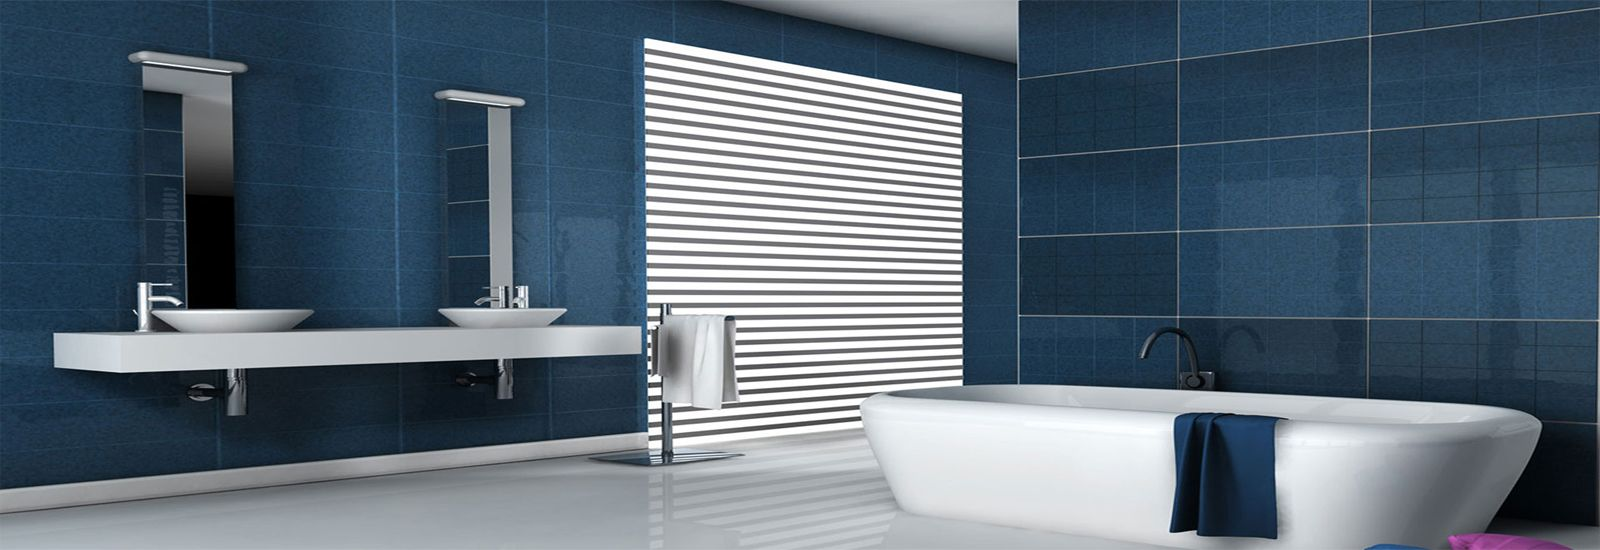 Most Wall Tile Is Glazed With A Fully Glossy Or Matt Type Thus Ceramic Wall Tiles Is Also As A Glossy Serie Bathroom Decor Bathroom Design Small Bathroom Decor